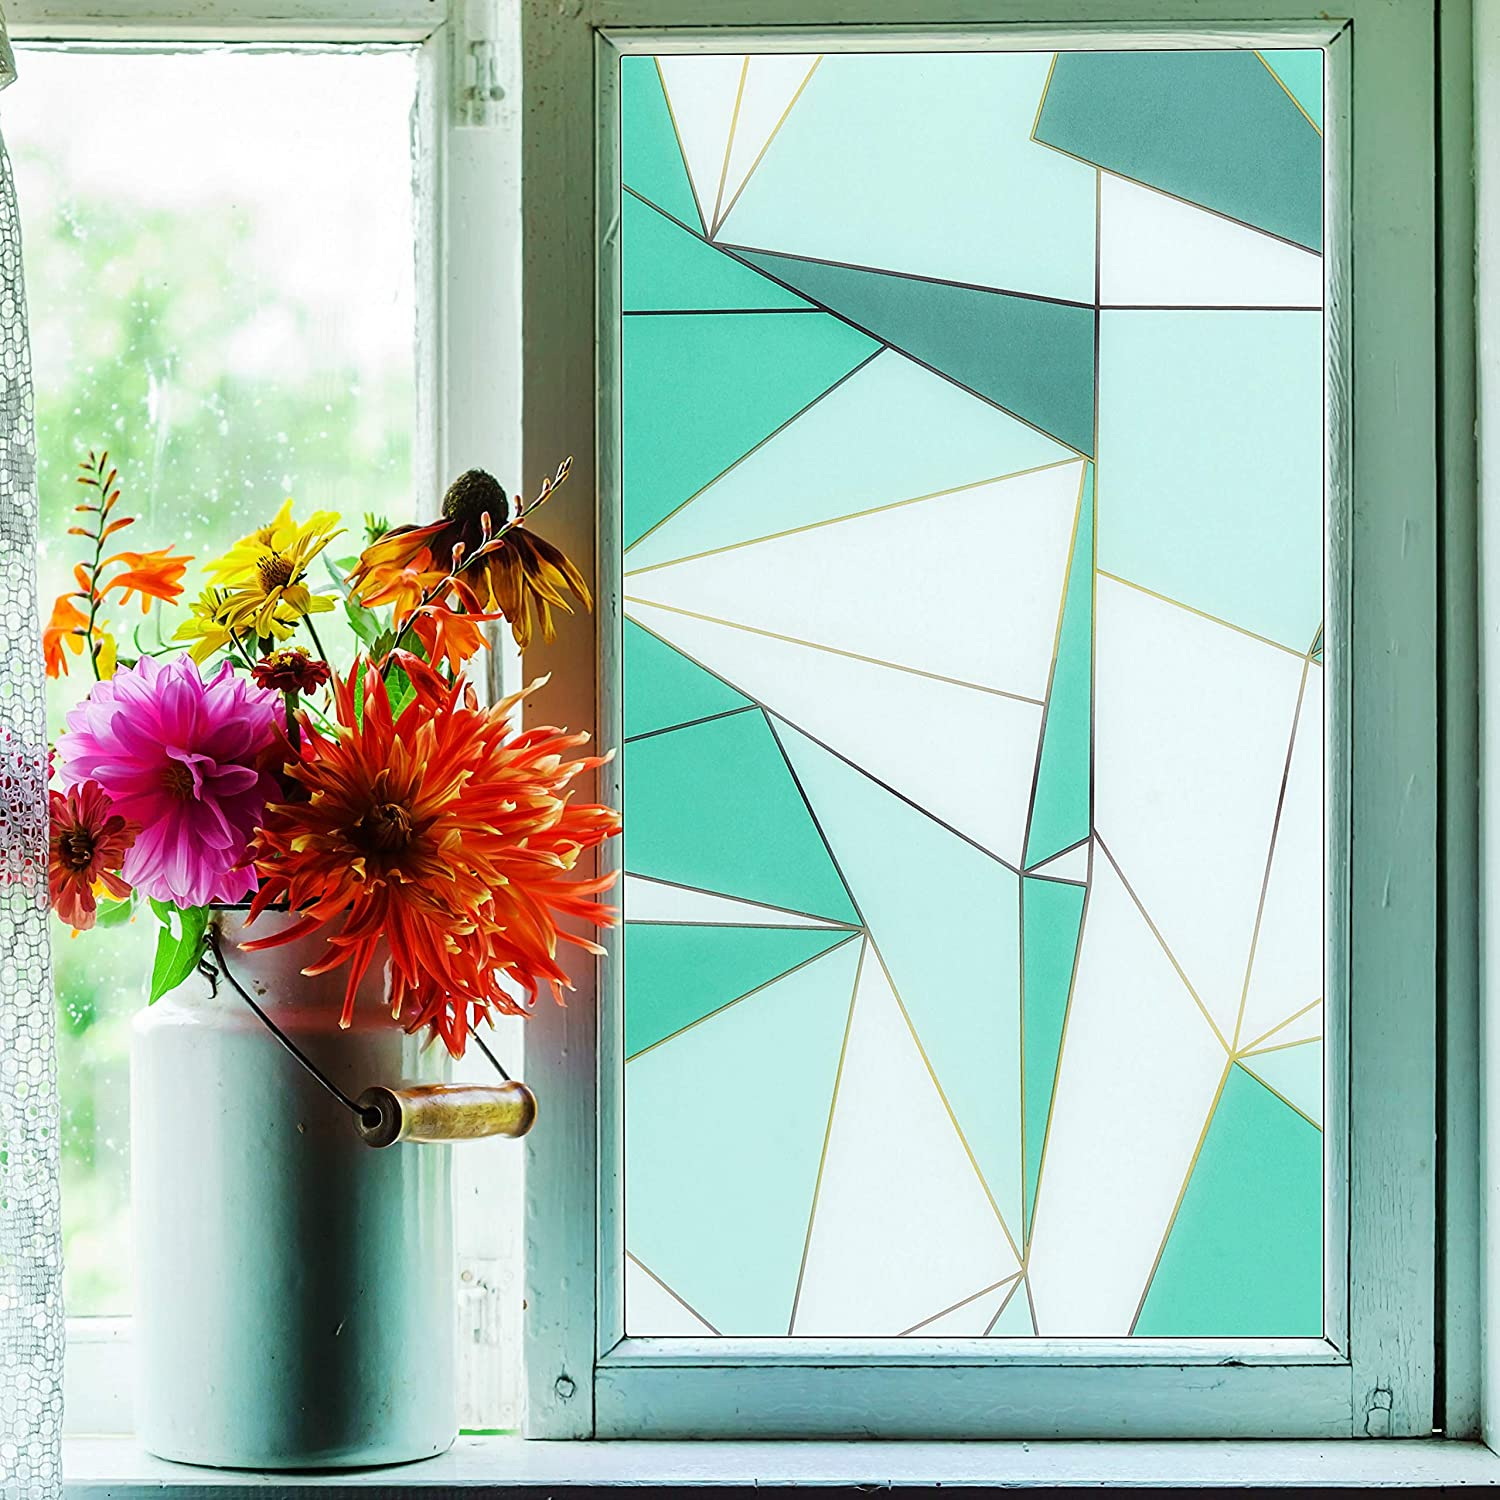 Privacy Window Film, Translucent Static Cling Treatment Frosted Window Sticker w/ Geometric Patterns - Decorative Opaque Glass Effect for Home Security, Heat Control, UV Prevention(Blue, 17.7x78.7in)